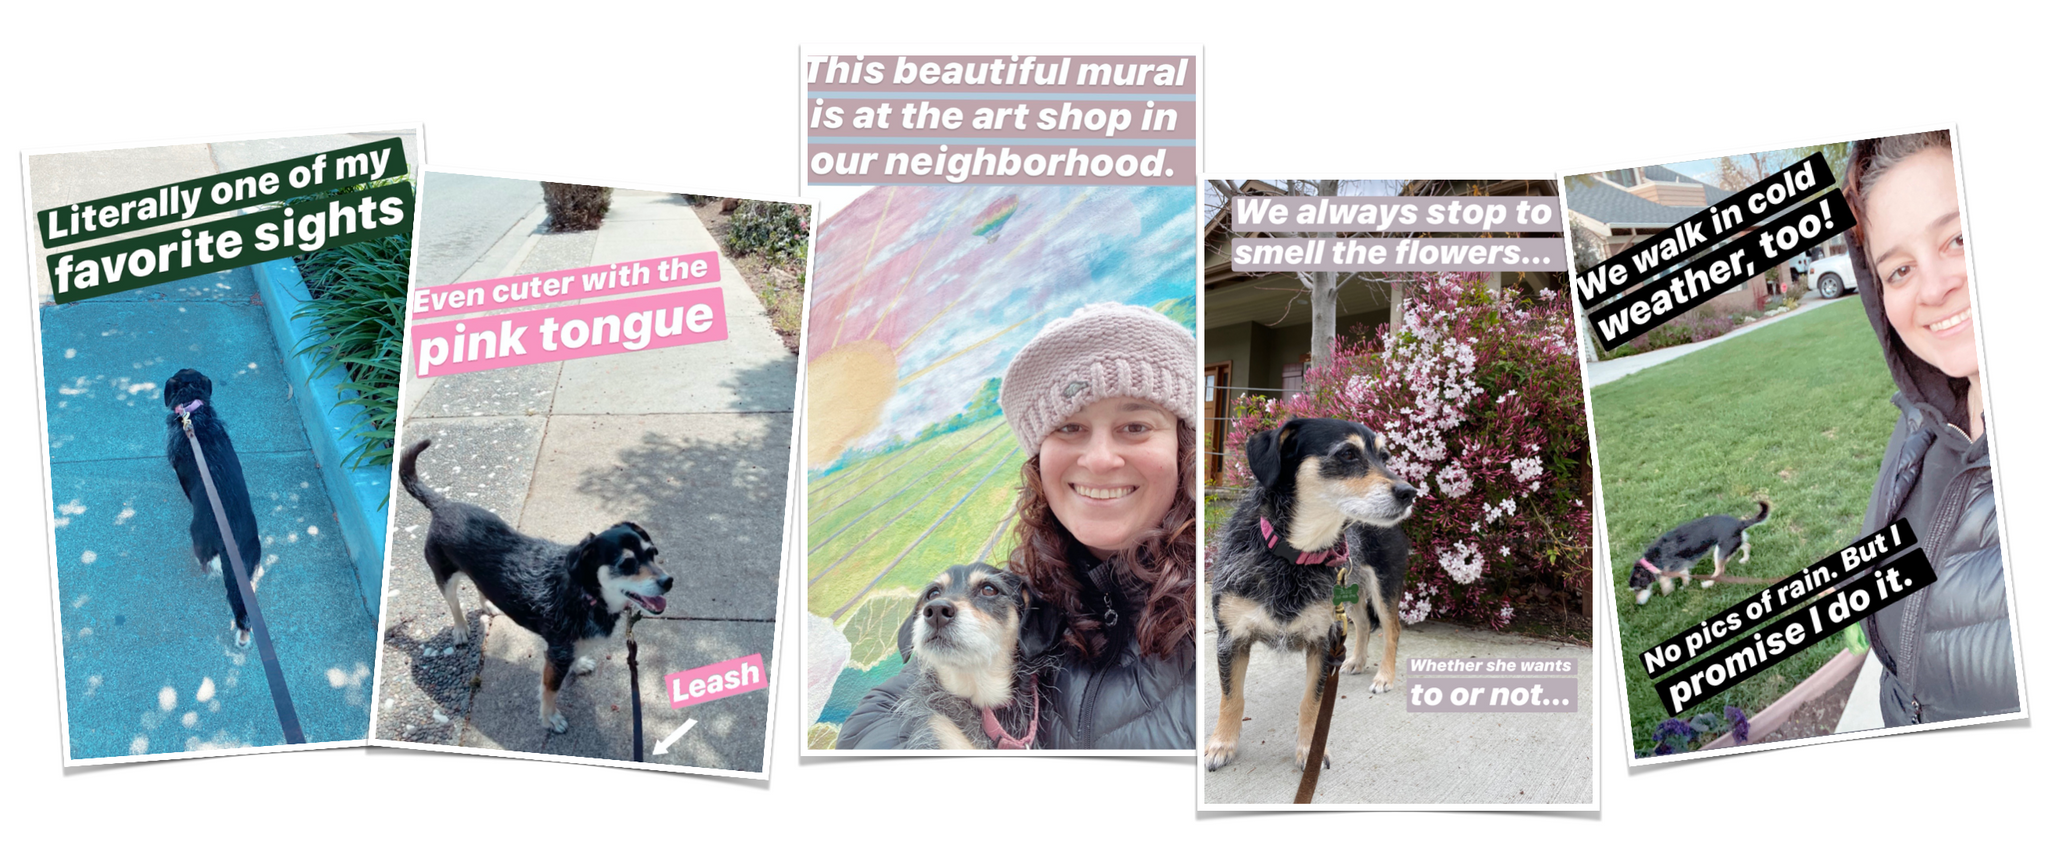 Walking my dog | Brindle Market